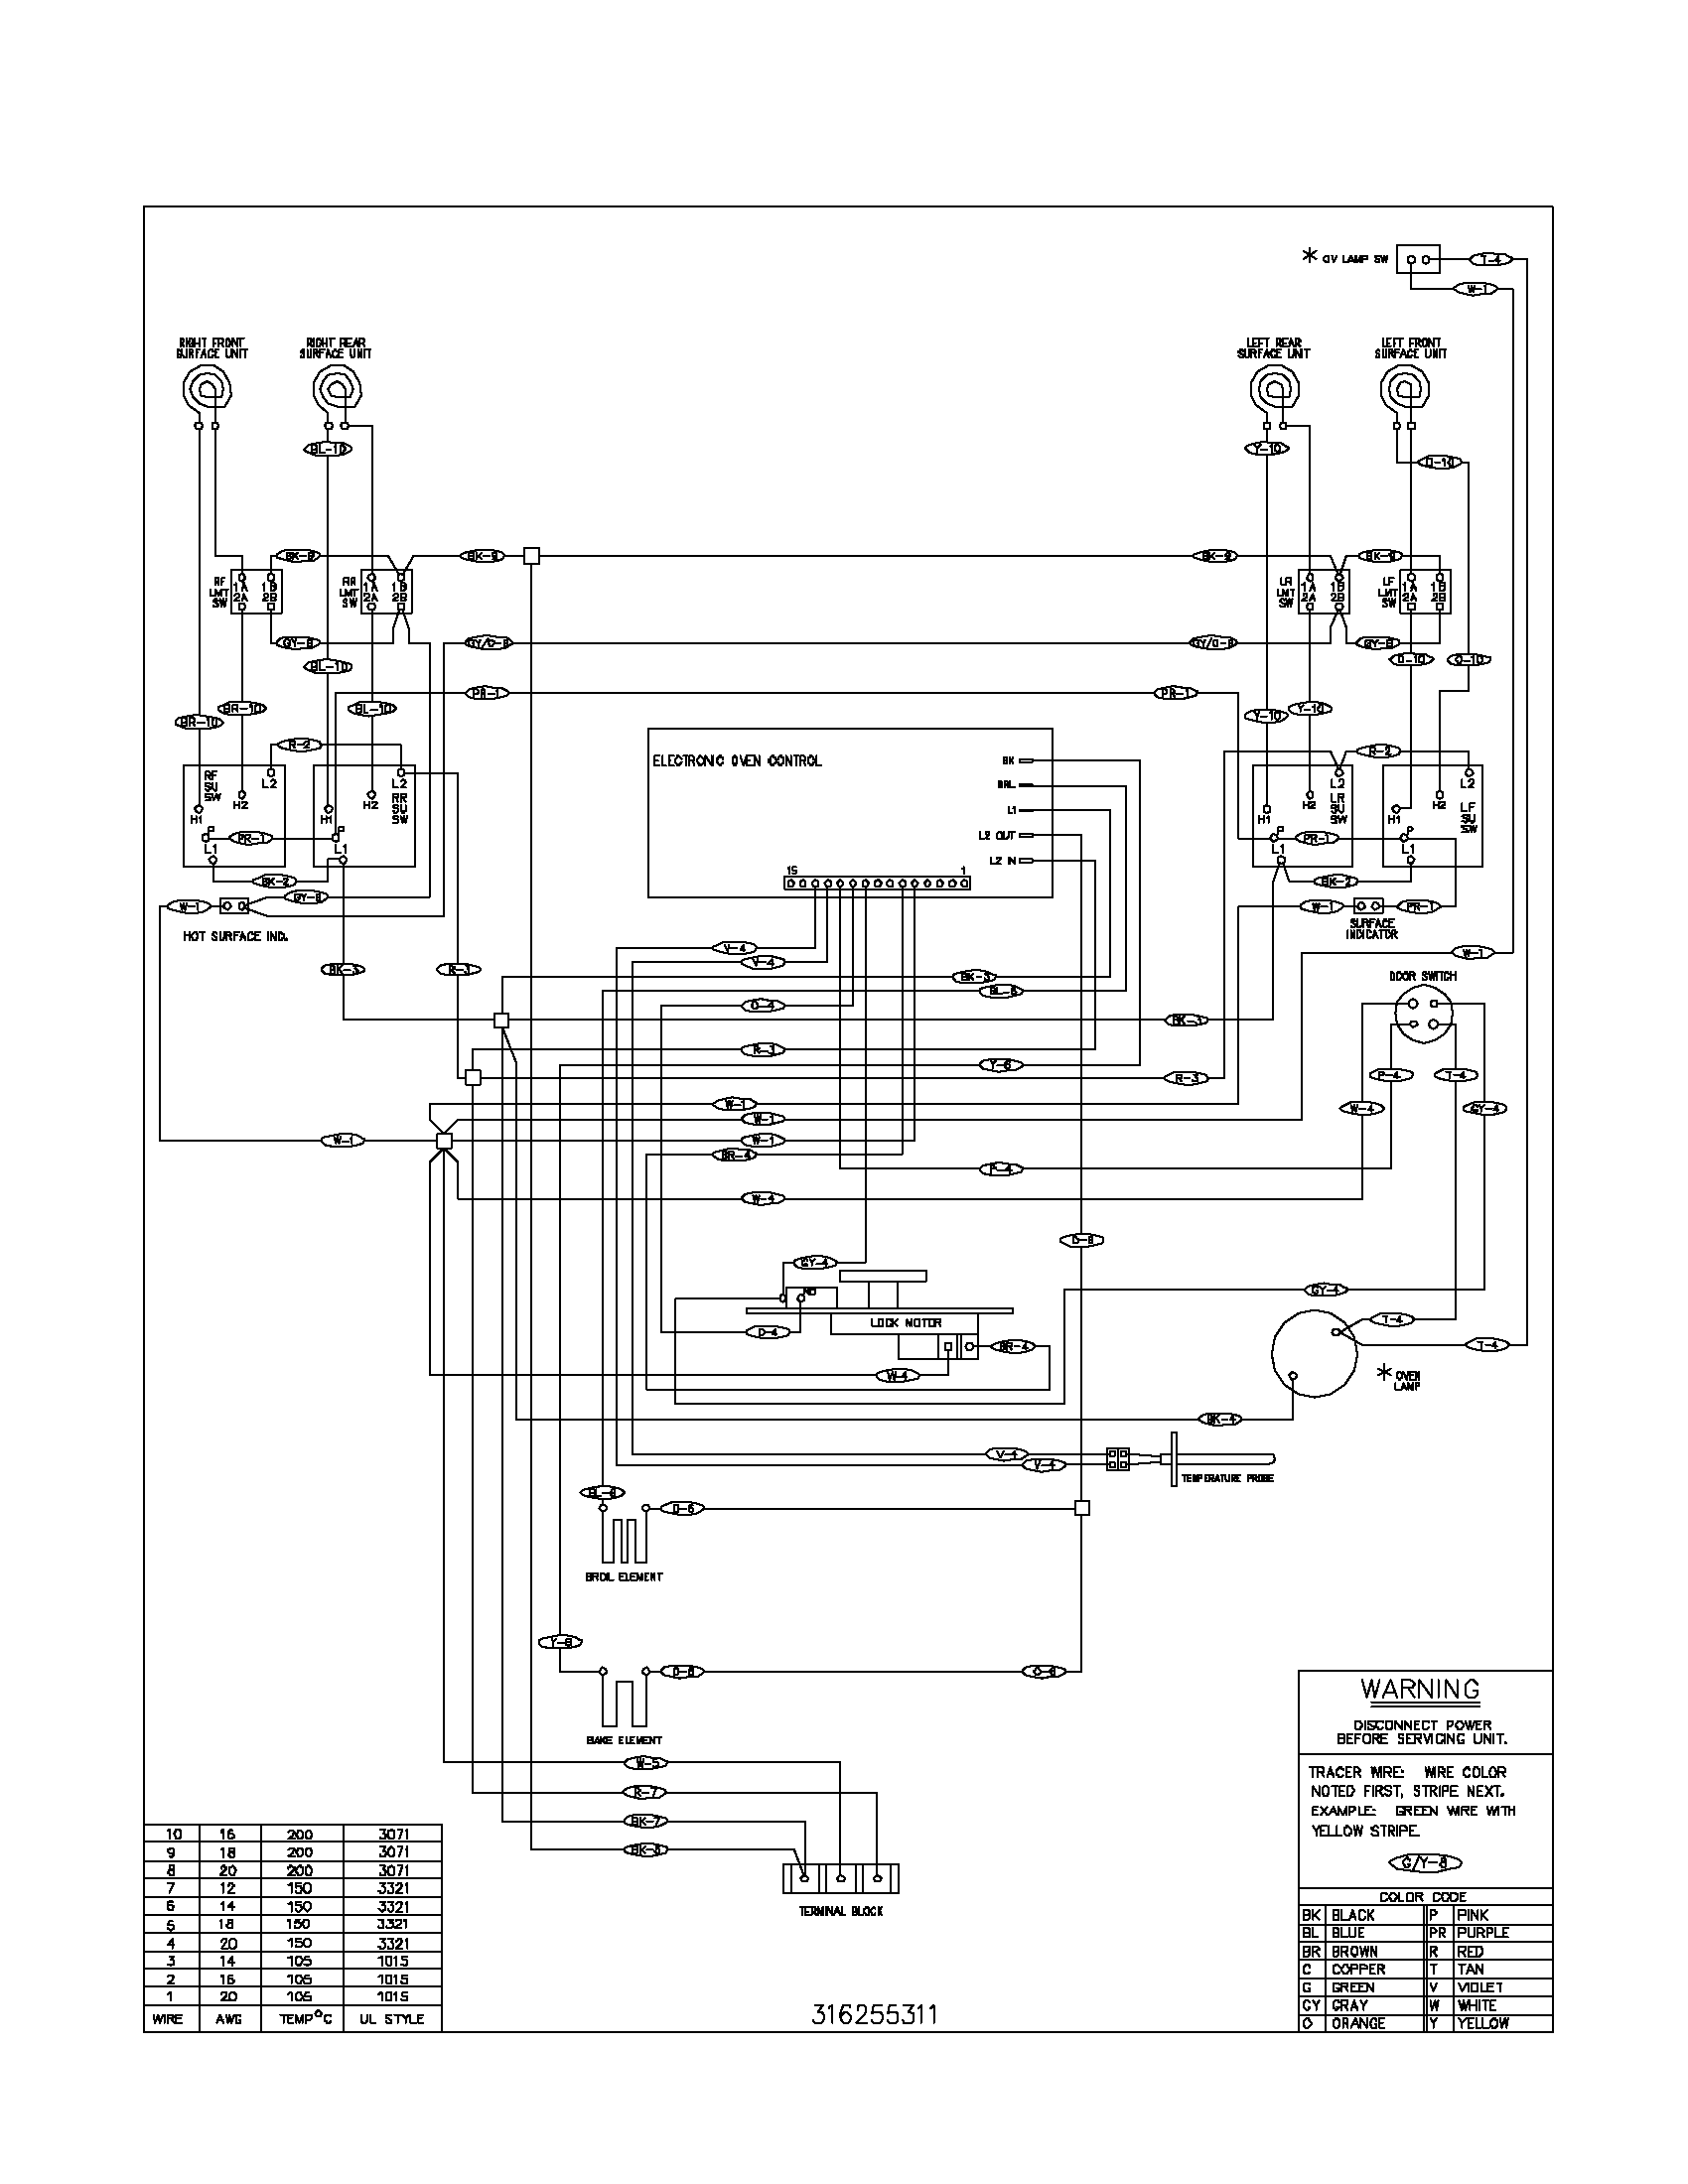 Lc1do9 Lrd1 4 Wire Diagram,do • Gsmx.co